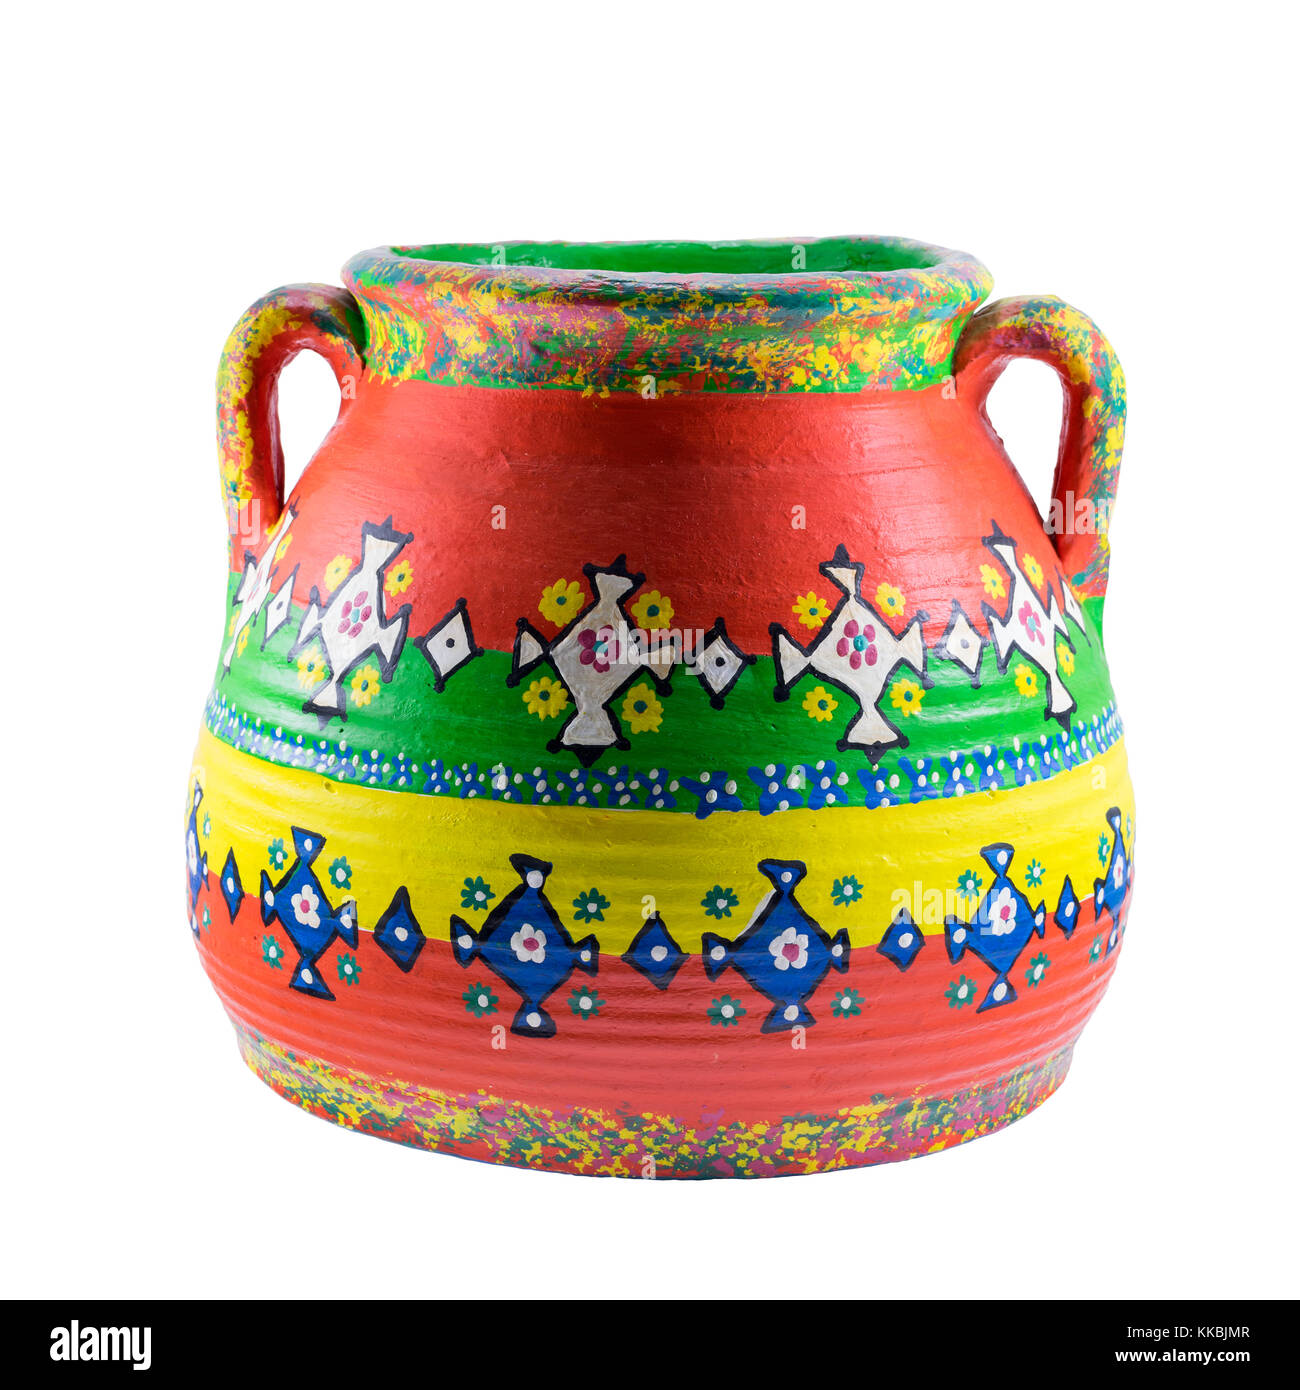 Egyptian decorated colorful painted pottery vase isolated on white - Stock Image